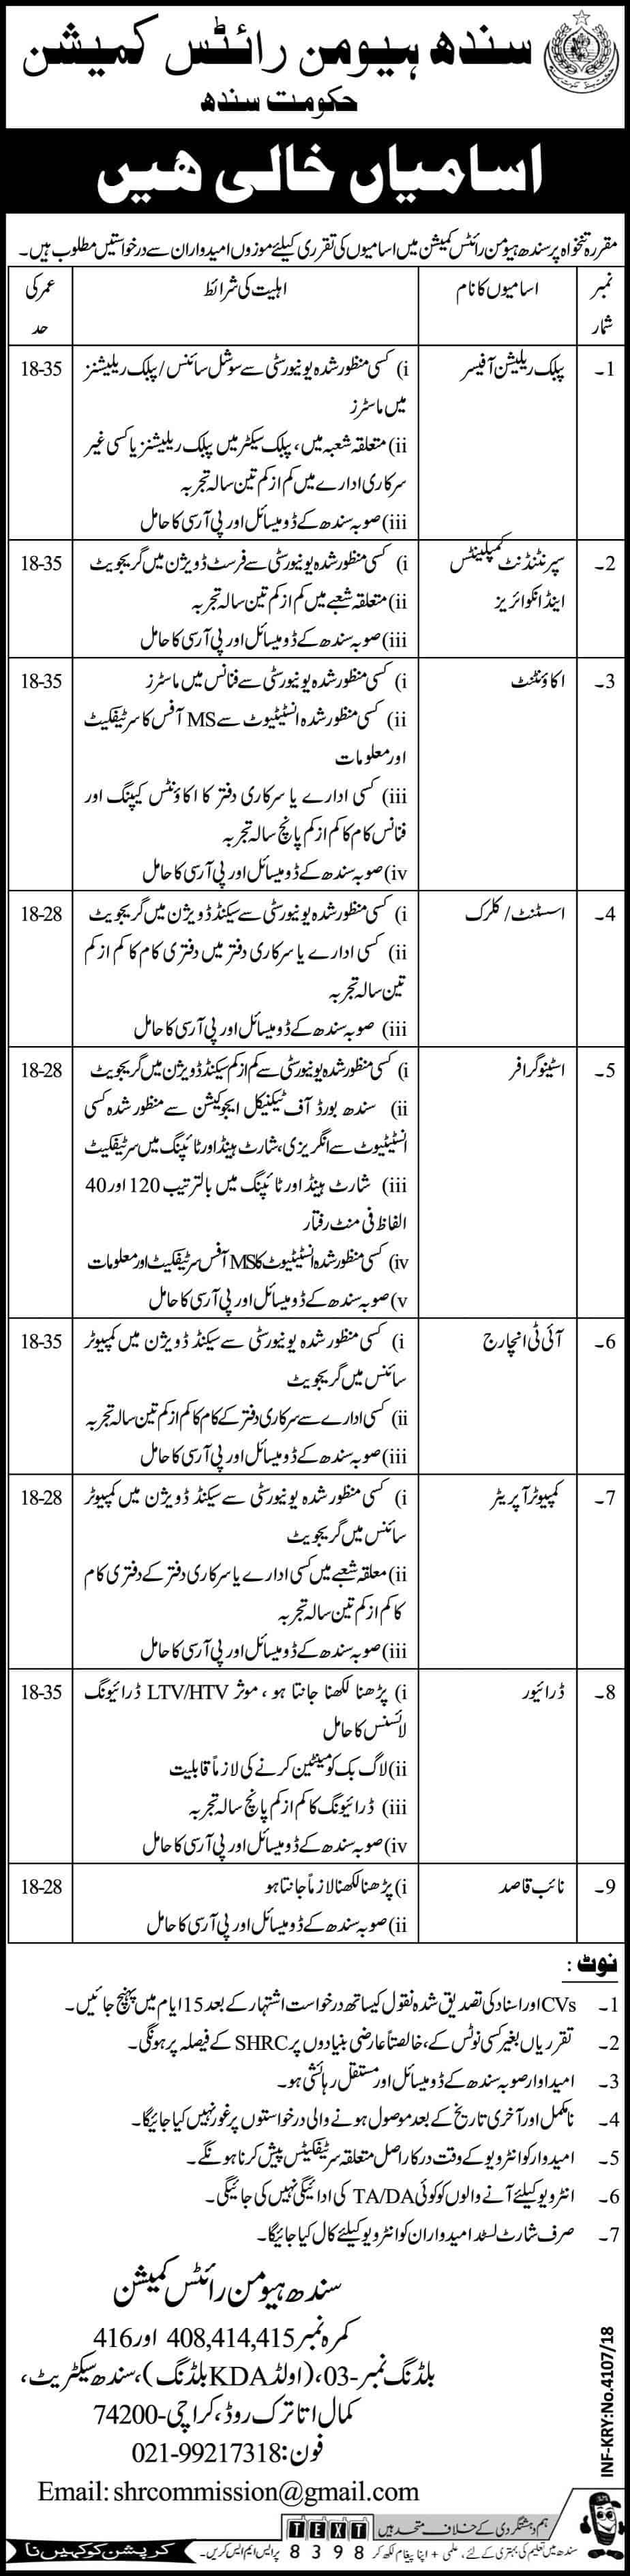 Human Right Commission Sindh Jobs 2018 Apply Online